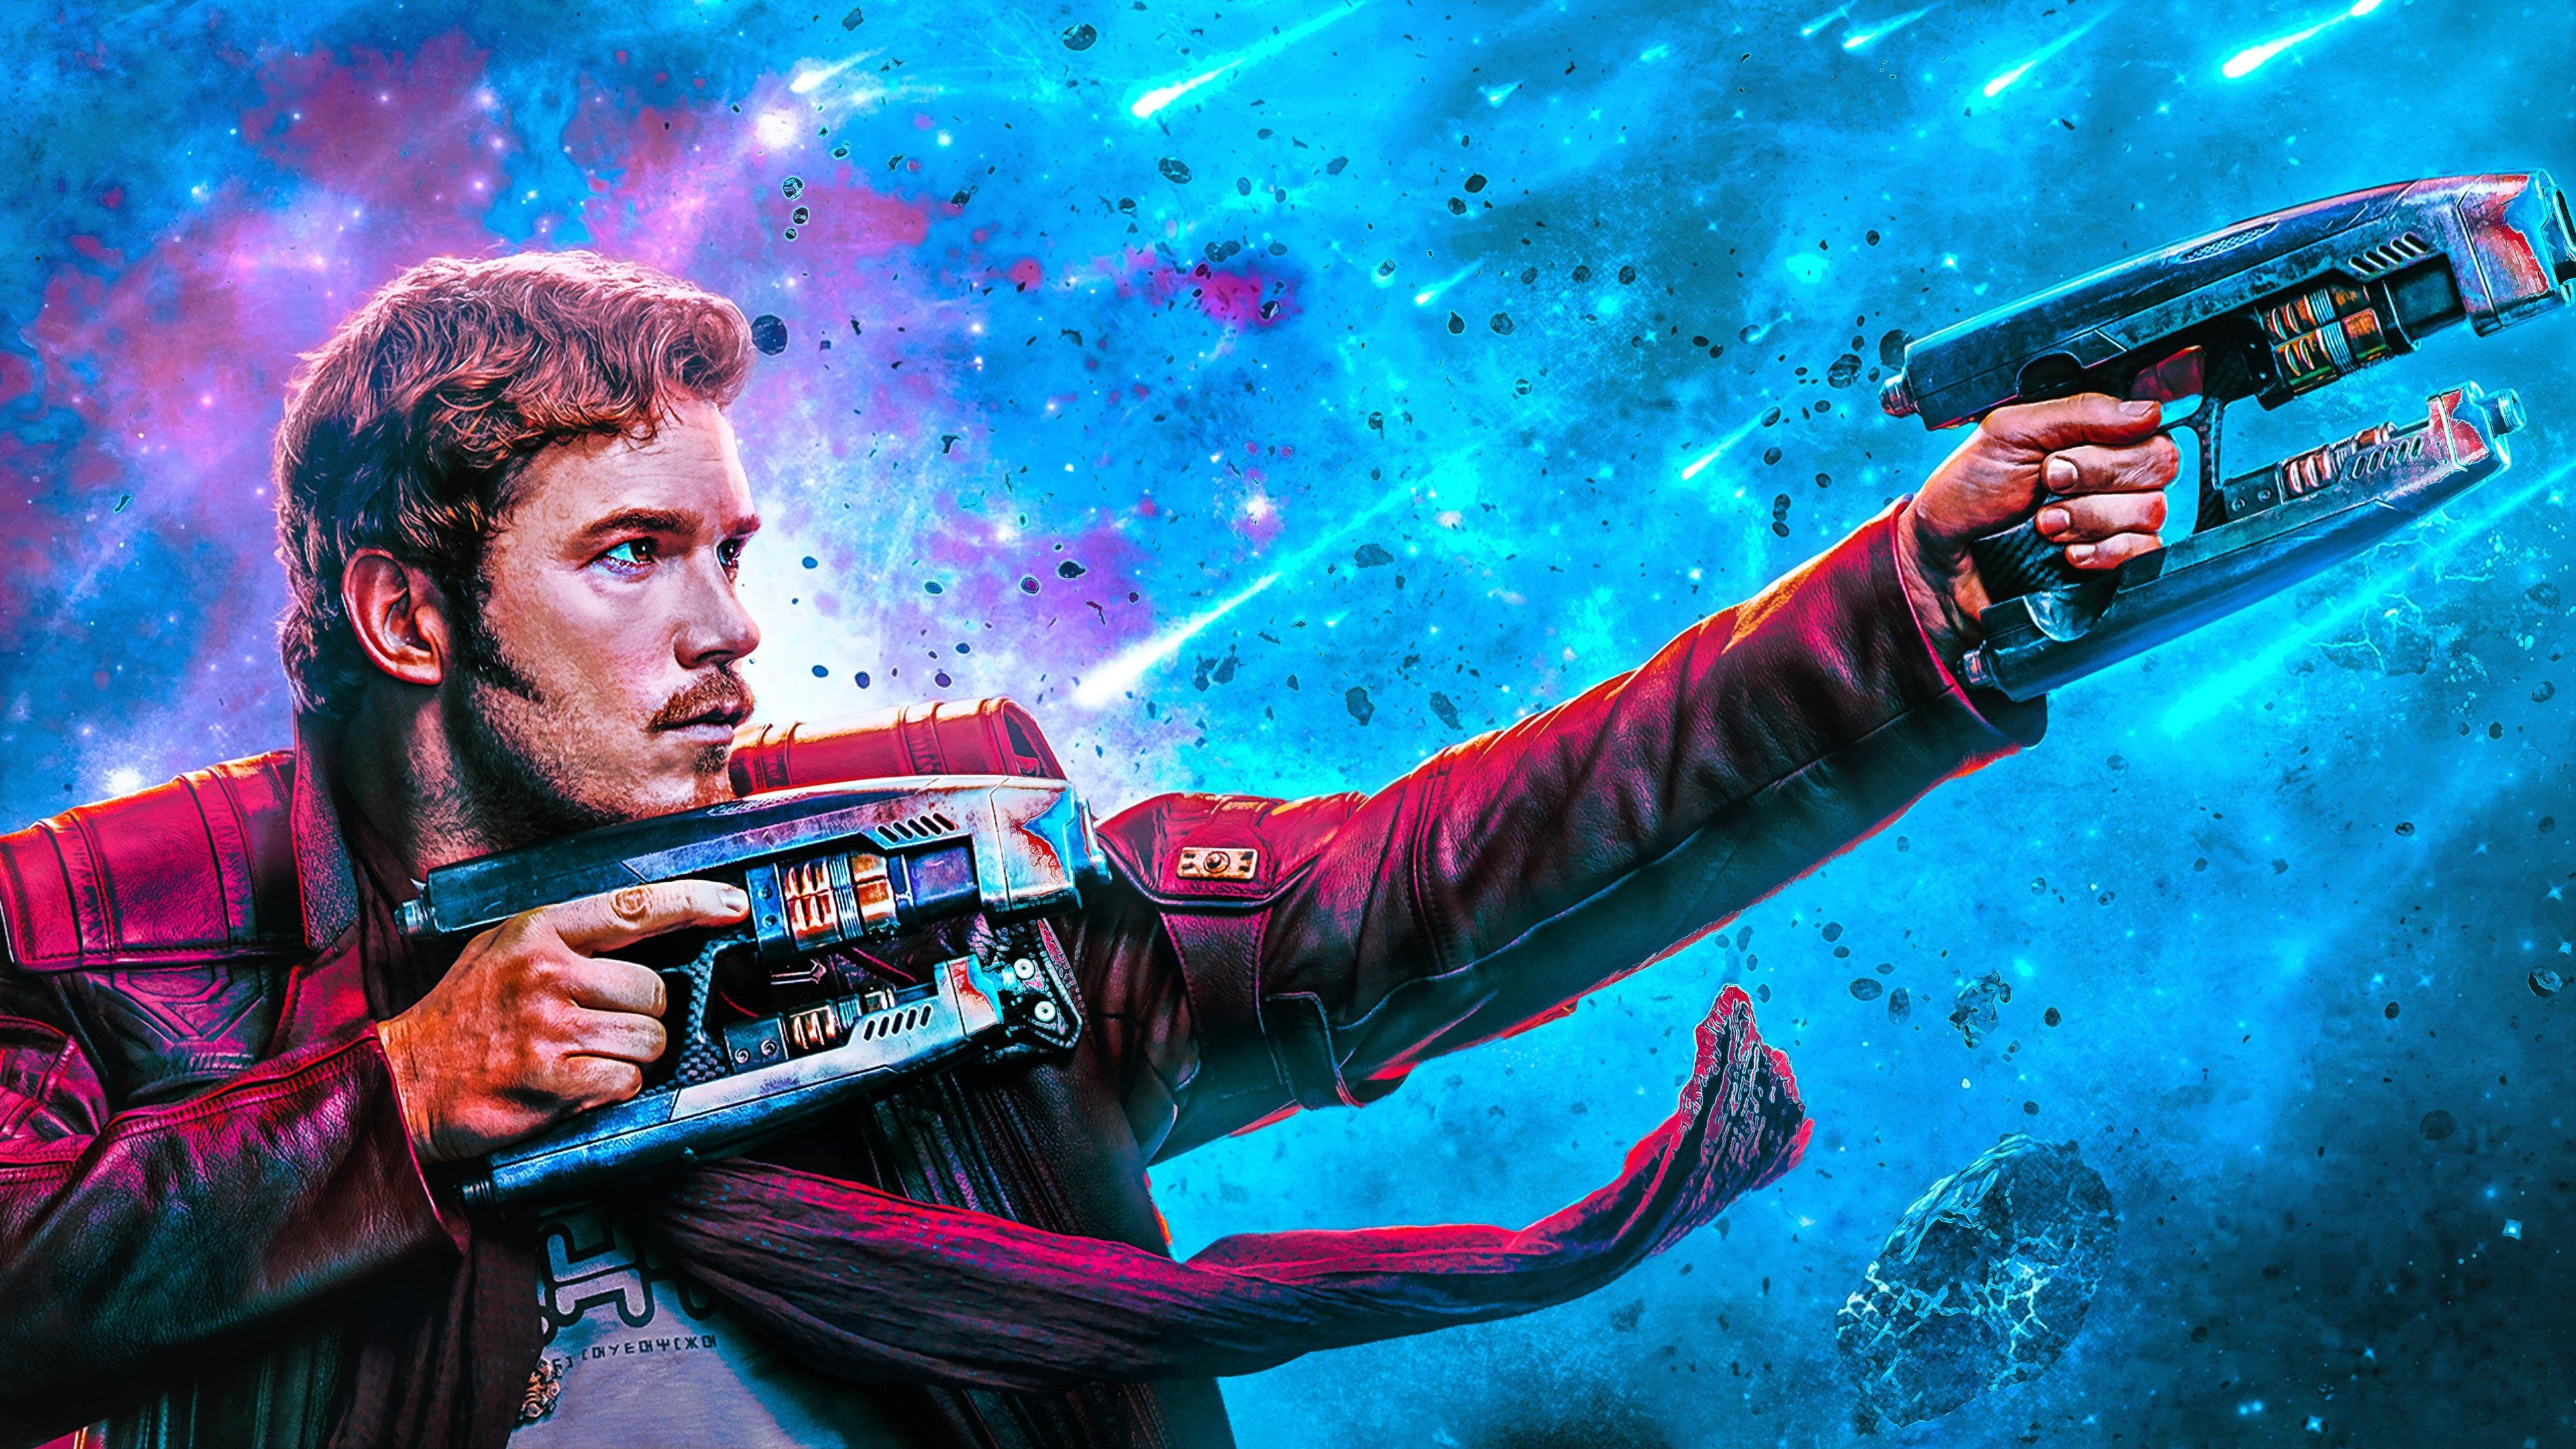 Star Lord 4k 2018 Superheroes Wallpapers Star Lord